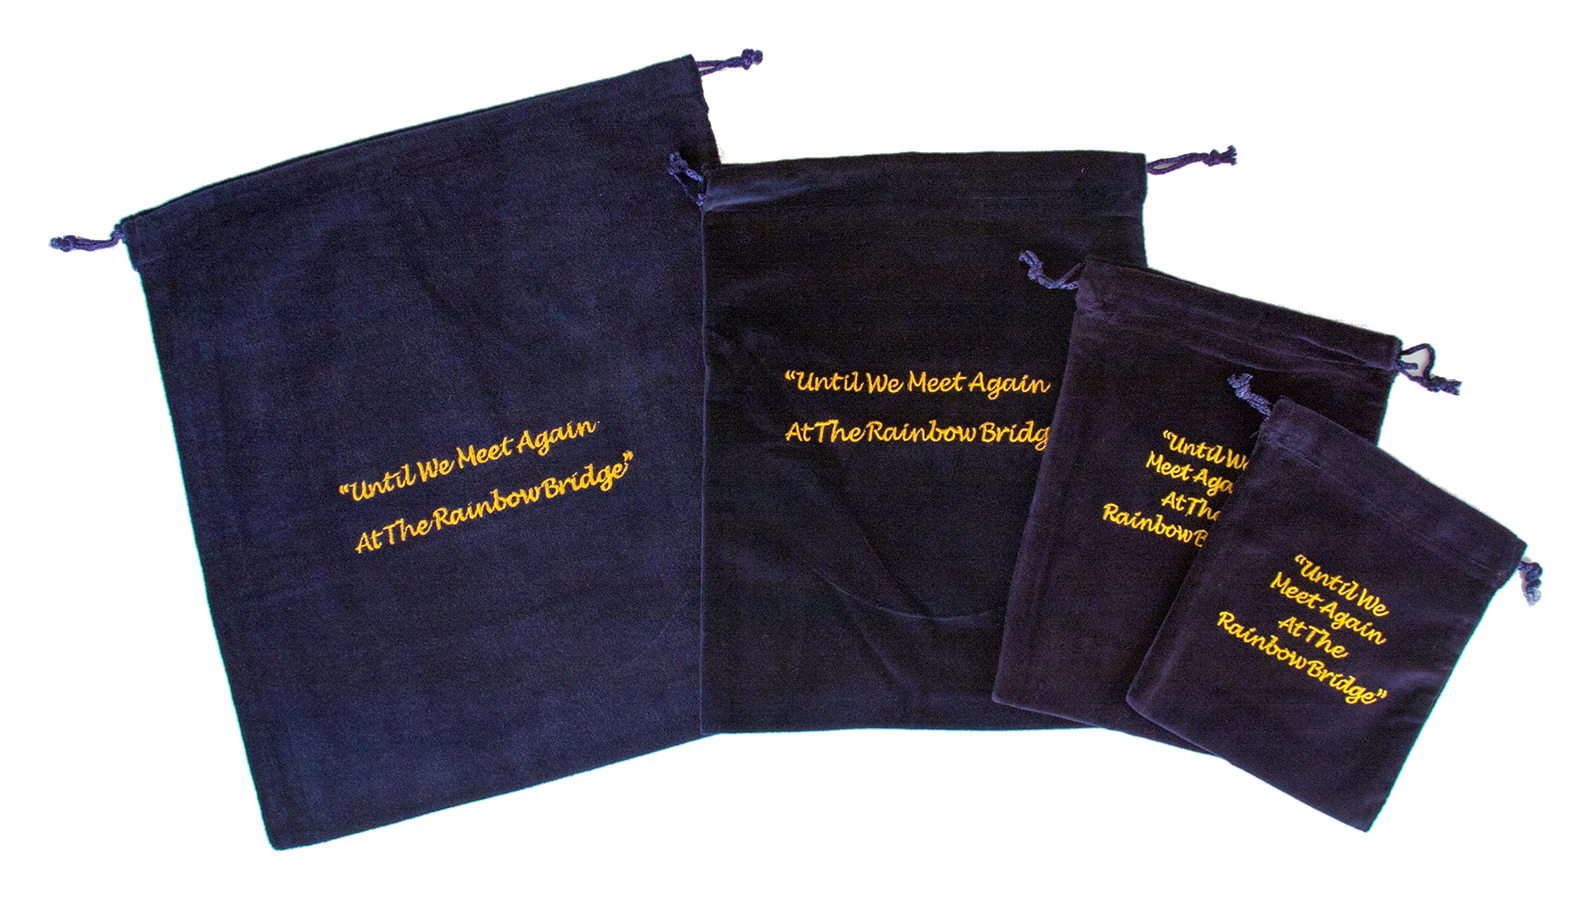 10 x Cremains Bags - Blue (Rainbow Bridge Embroidery)